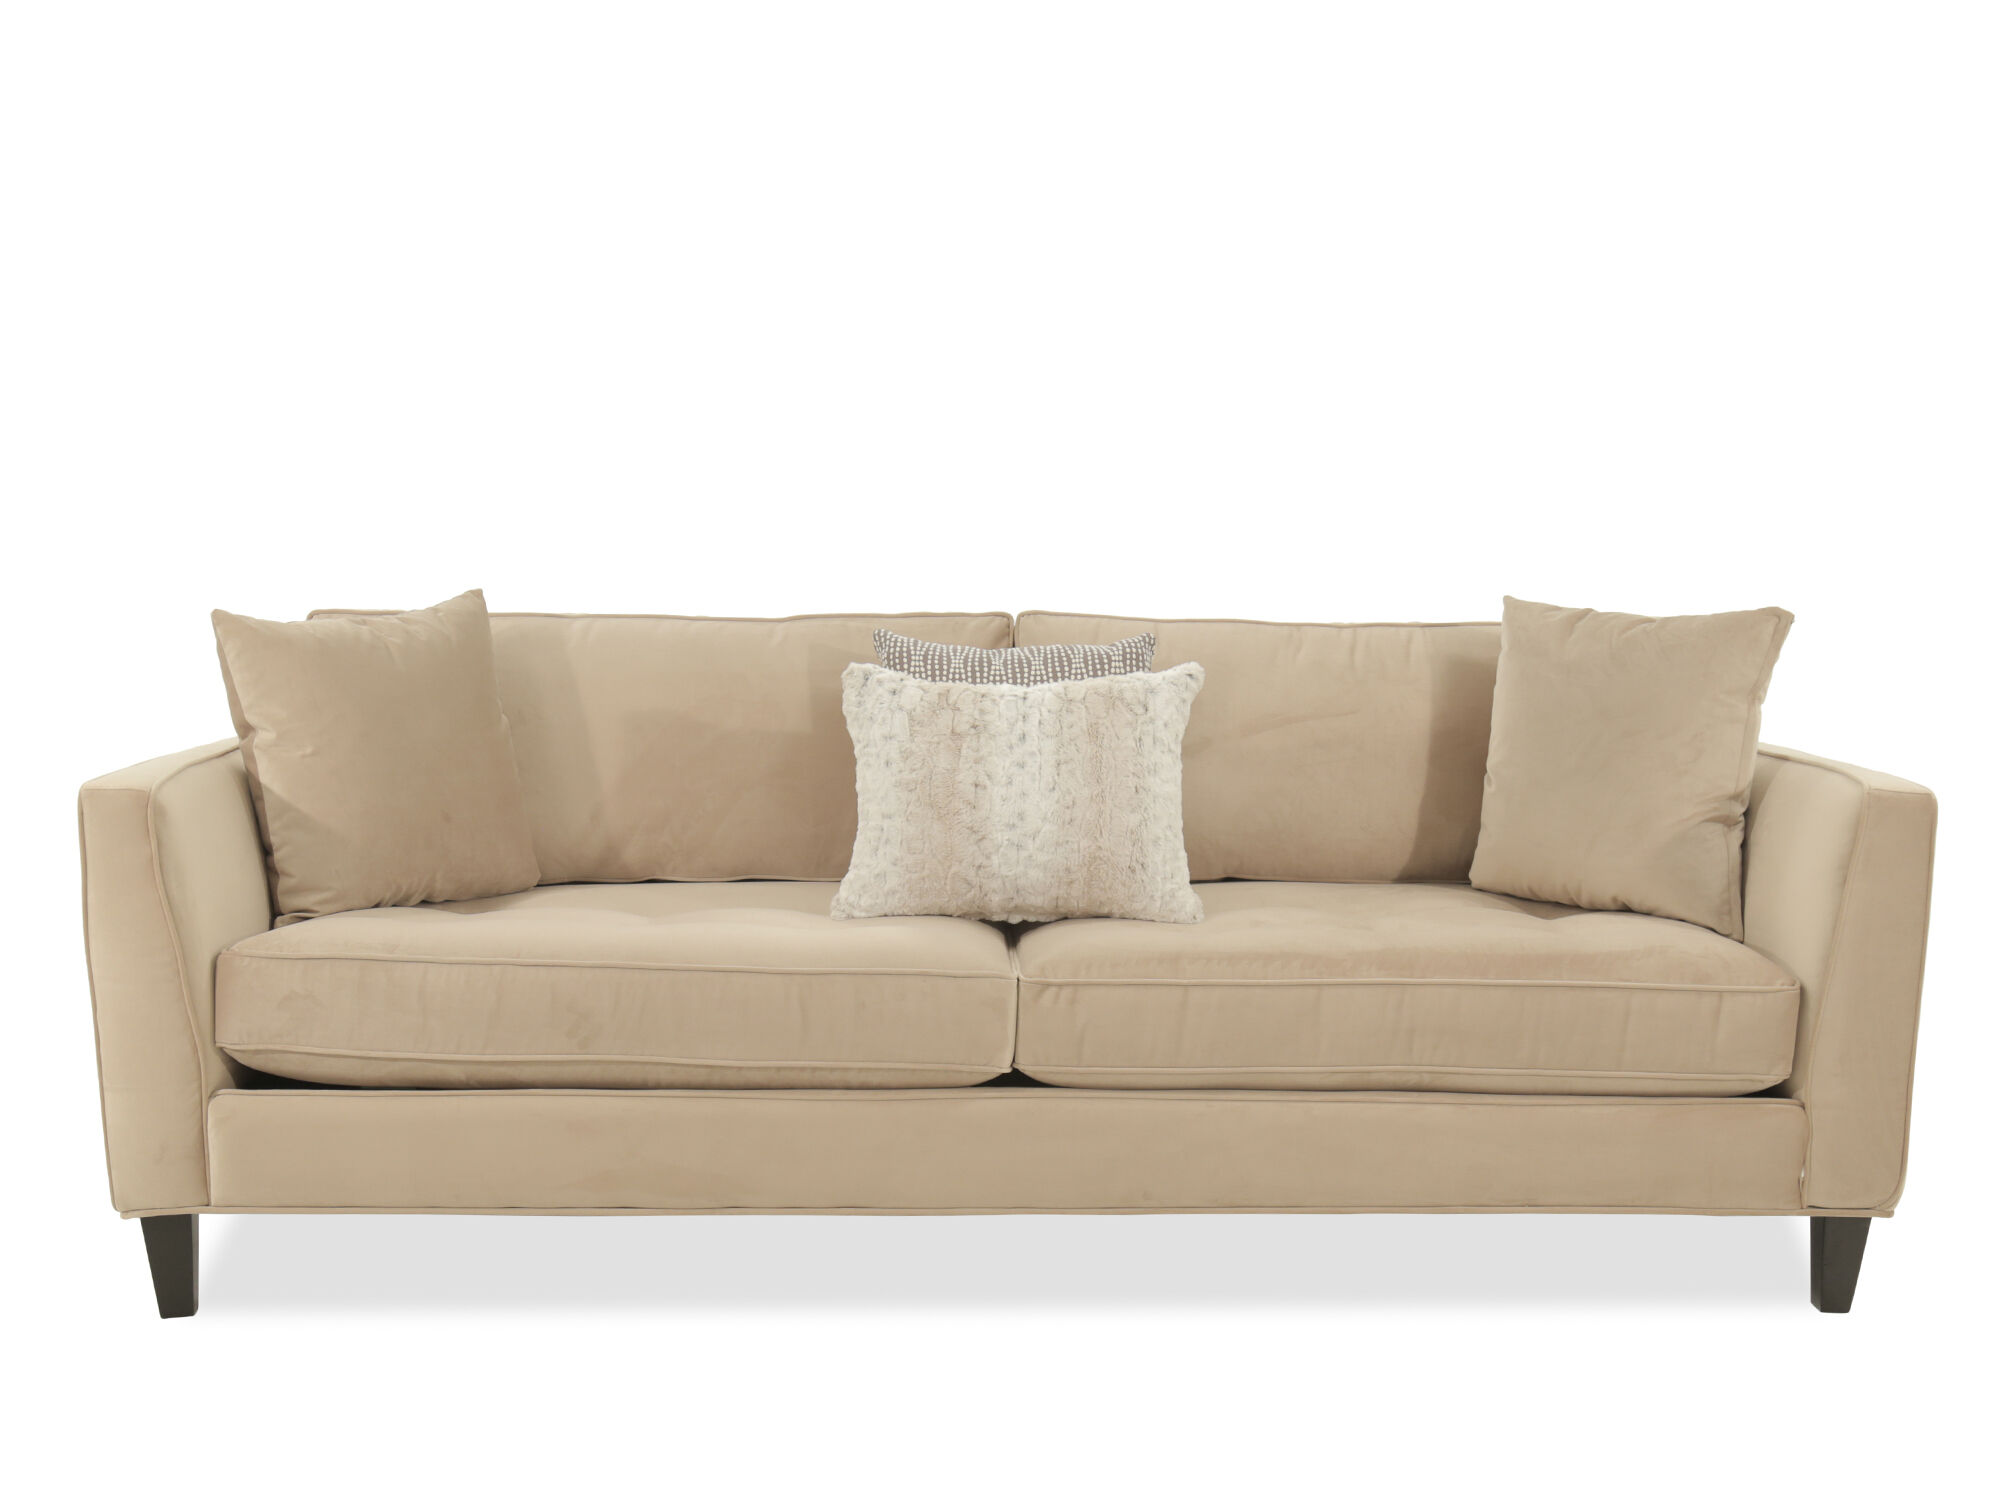 Jonathan Louis Calista Estate Beige Sofa Mathis Brothers Furniture  sc 1 st  Rooms : jonathan louis burton sectional - Sectionals, Sofas & Couches